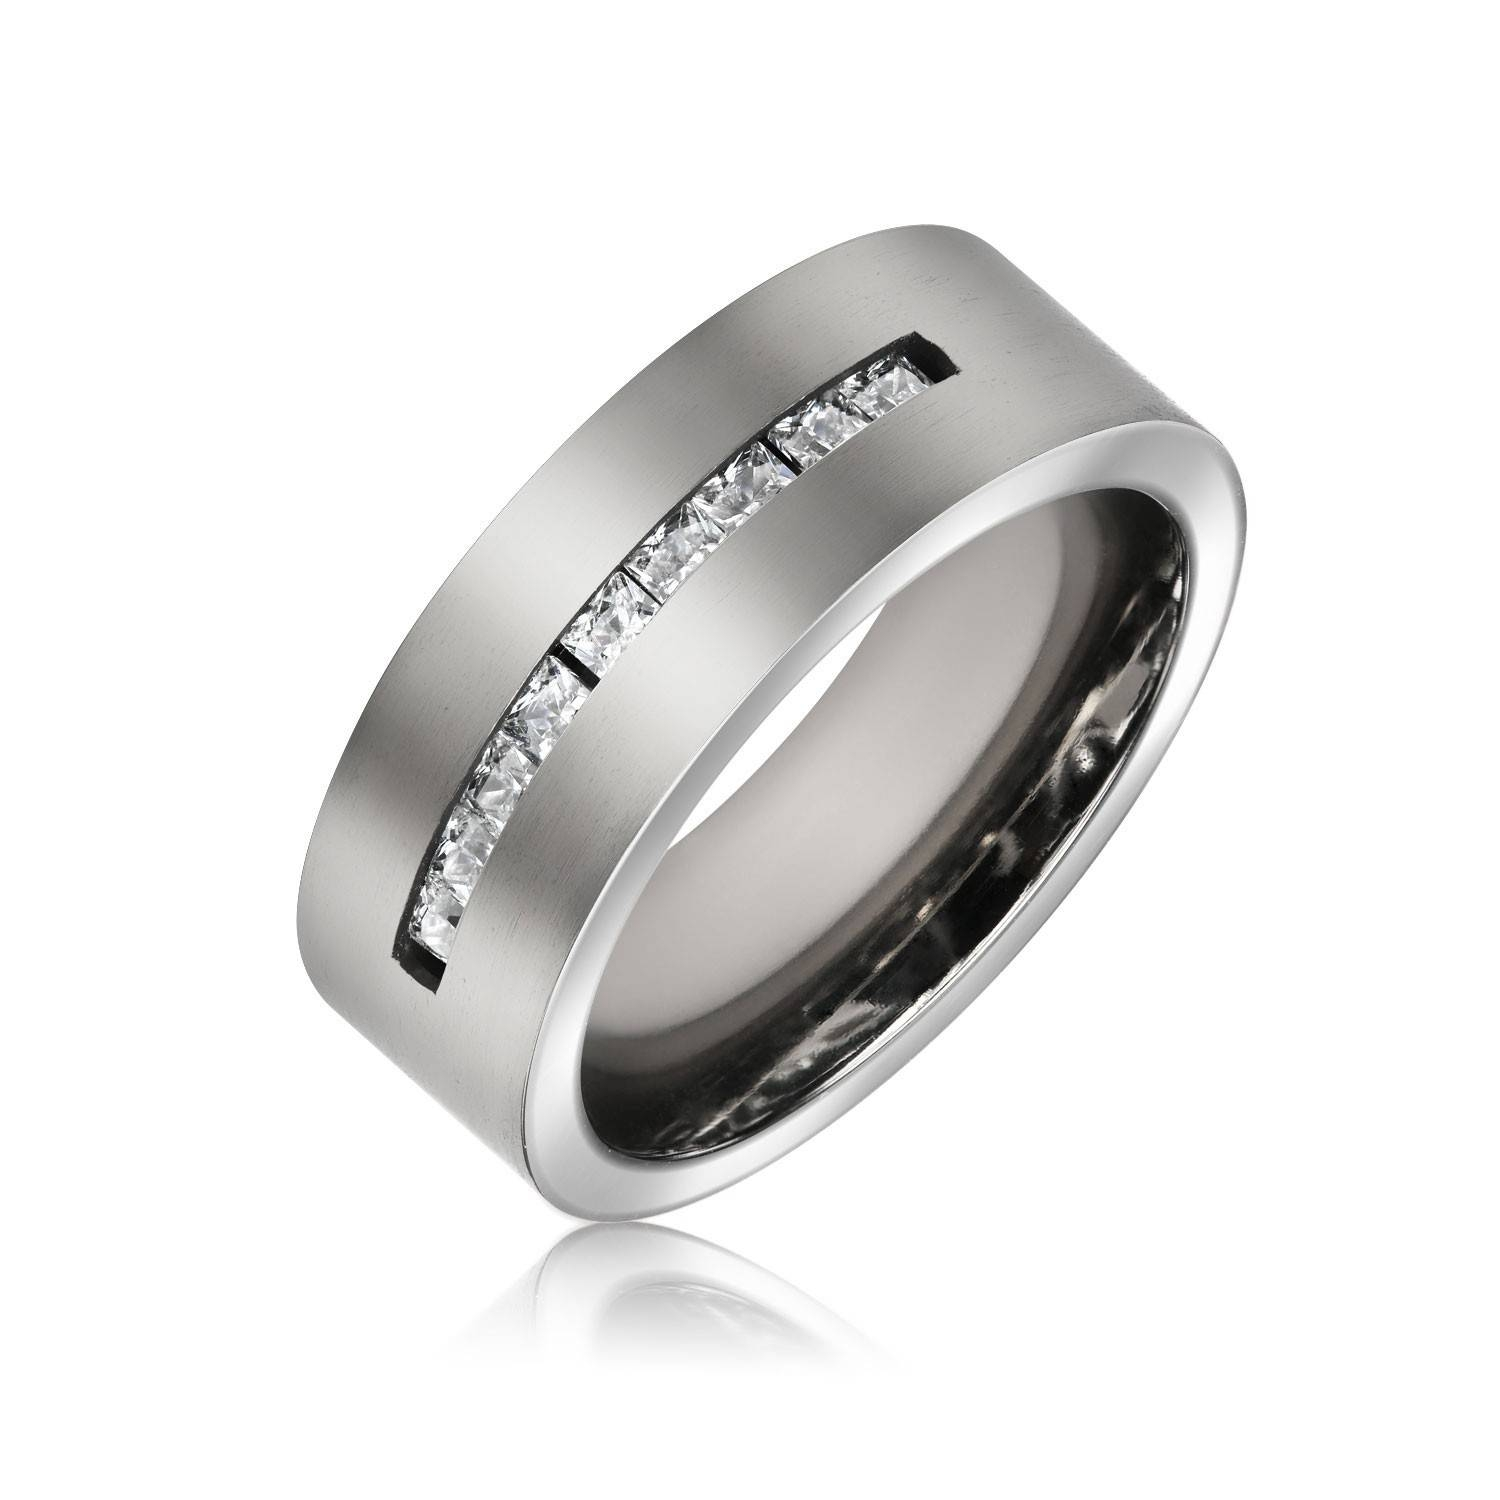 Photo Gallery of Mens Skull Wedding Bands Viewing 13 of 15 Photos